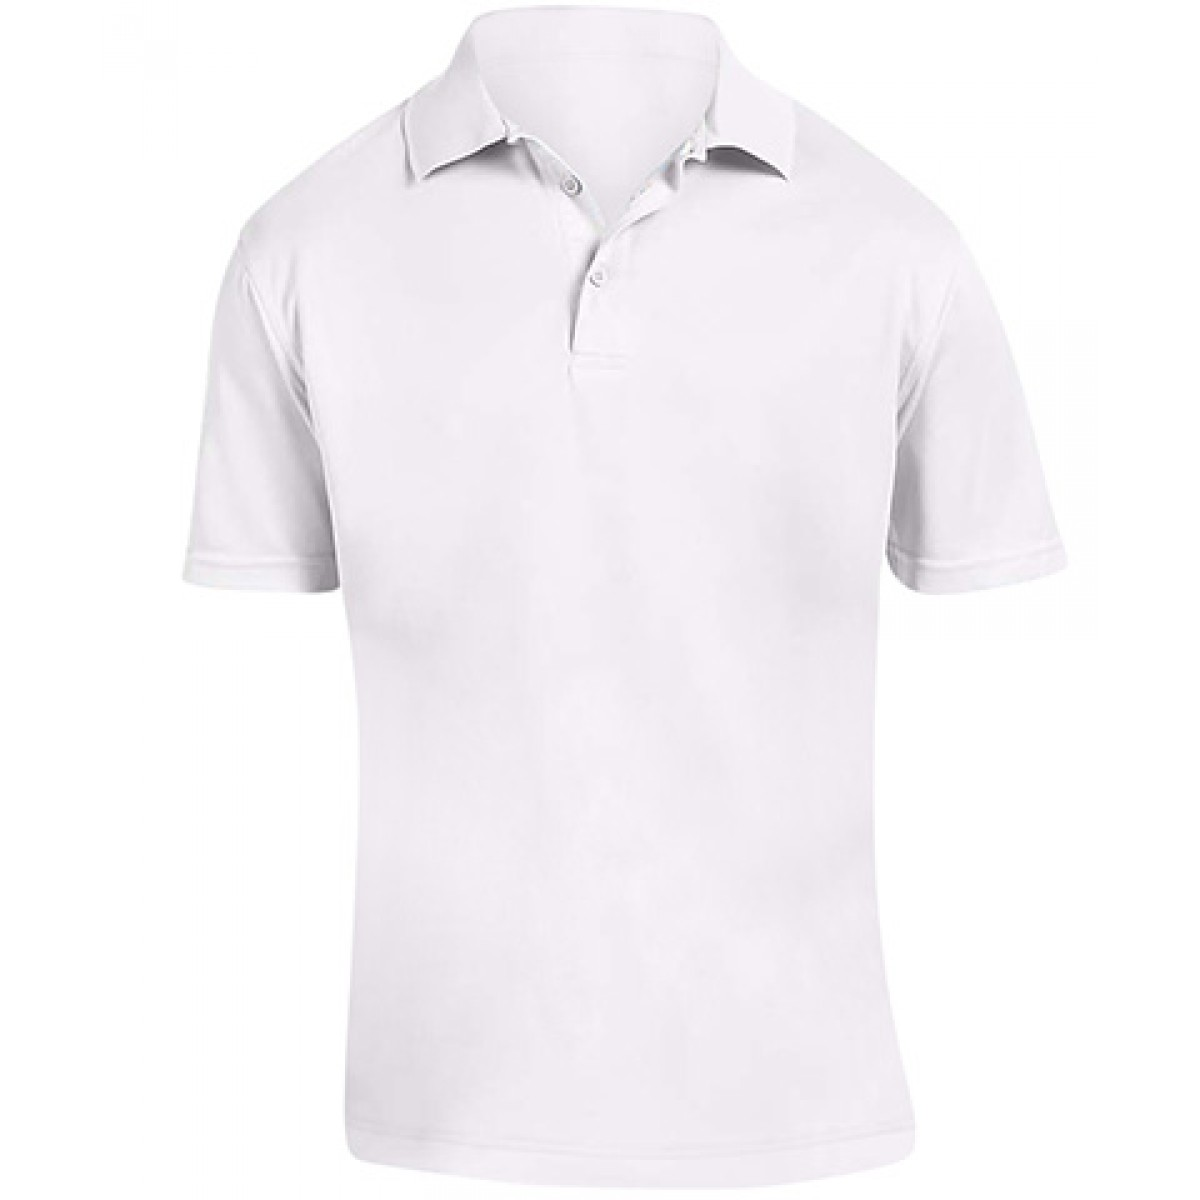 Men's 4 oz. Polytech Polo-White-S